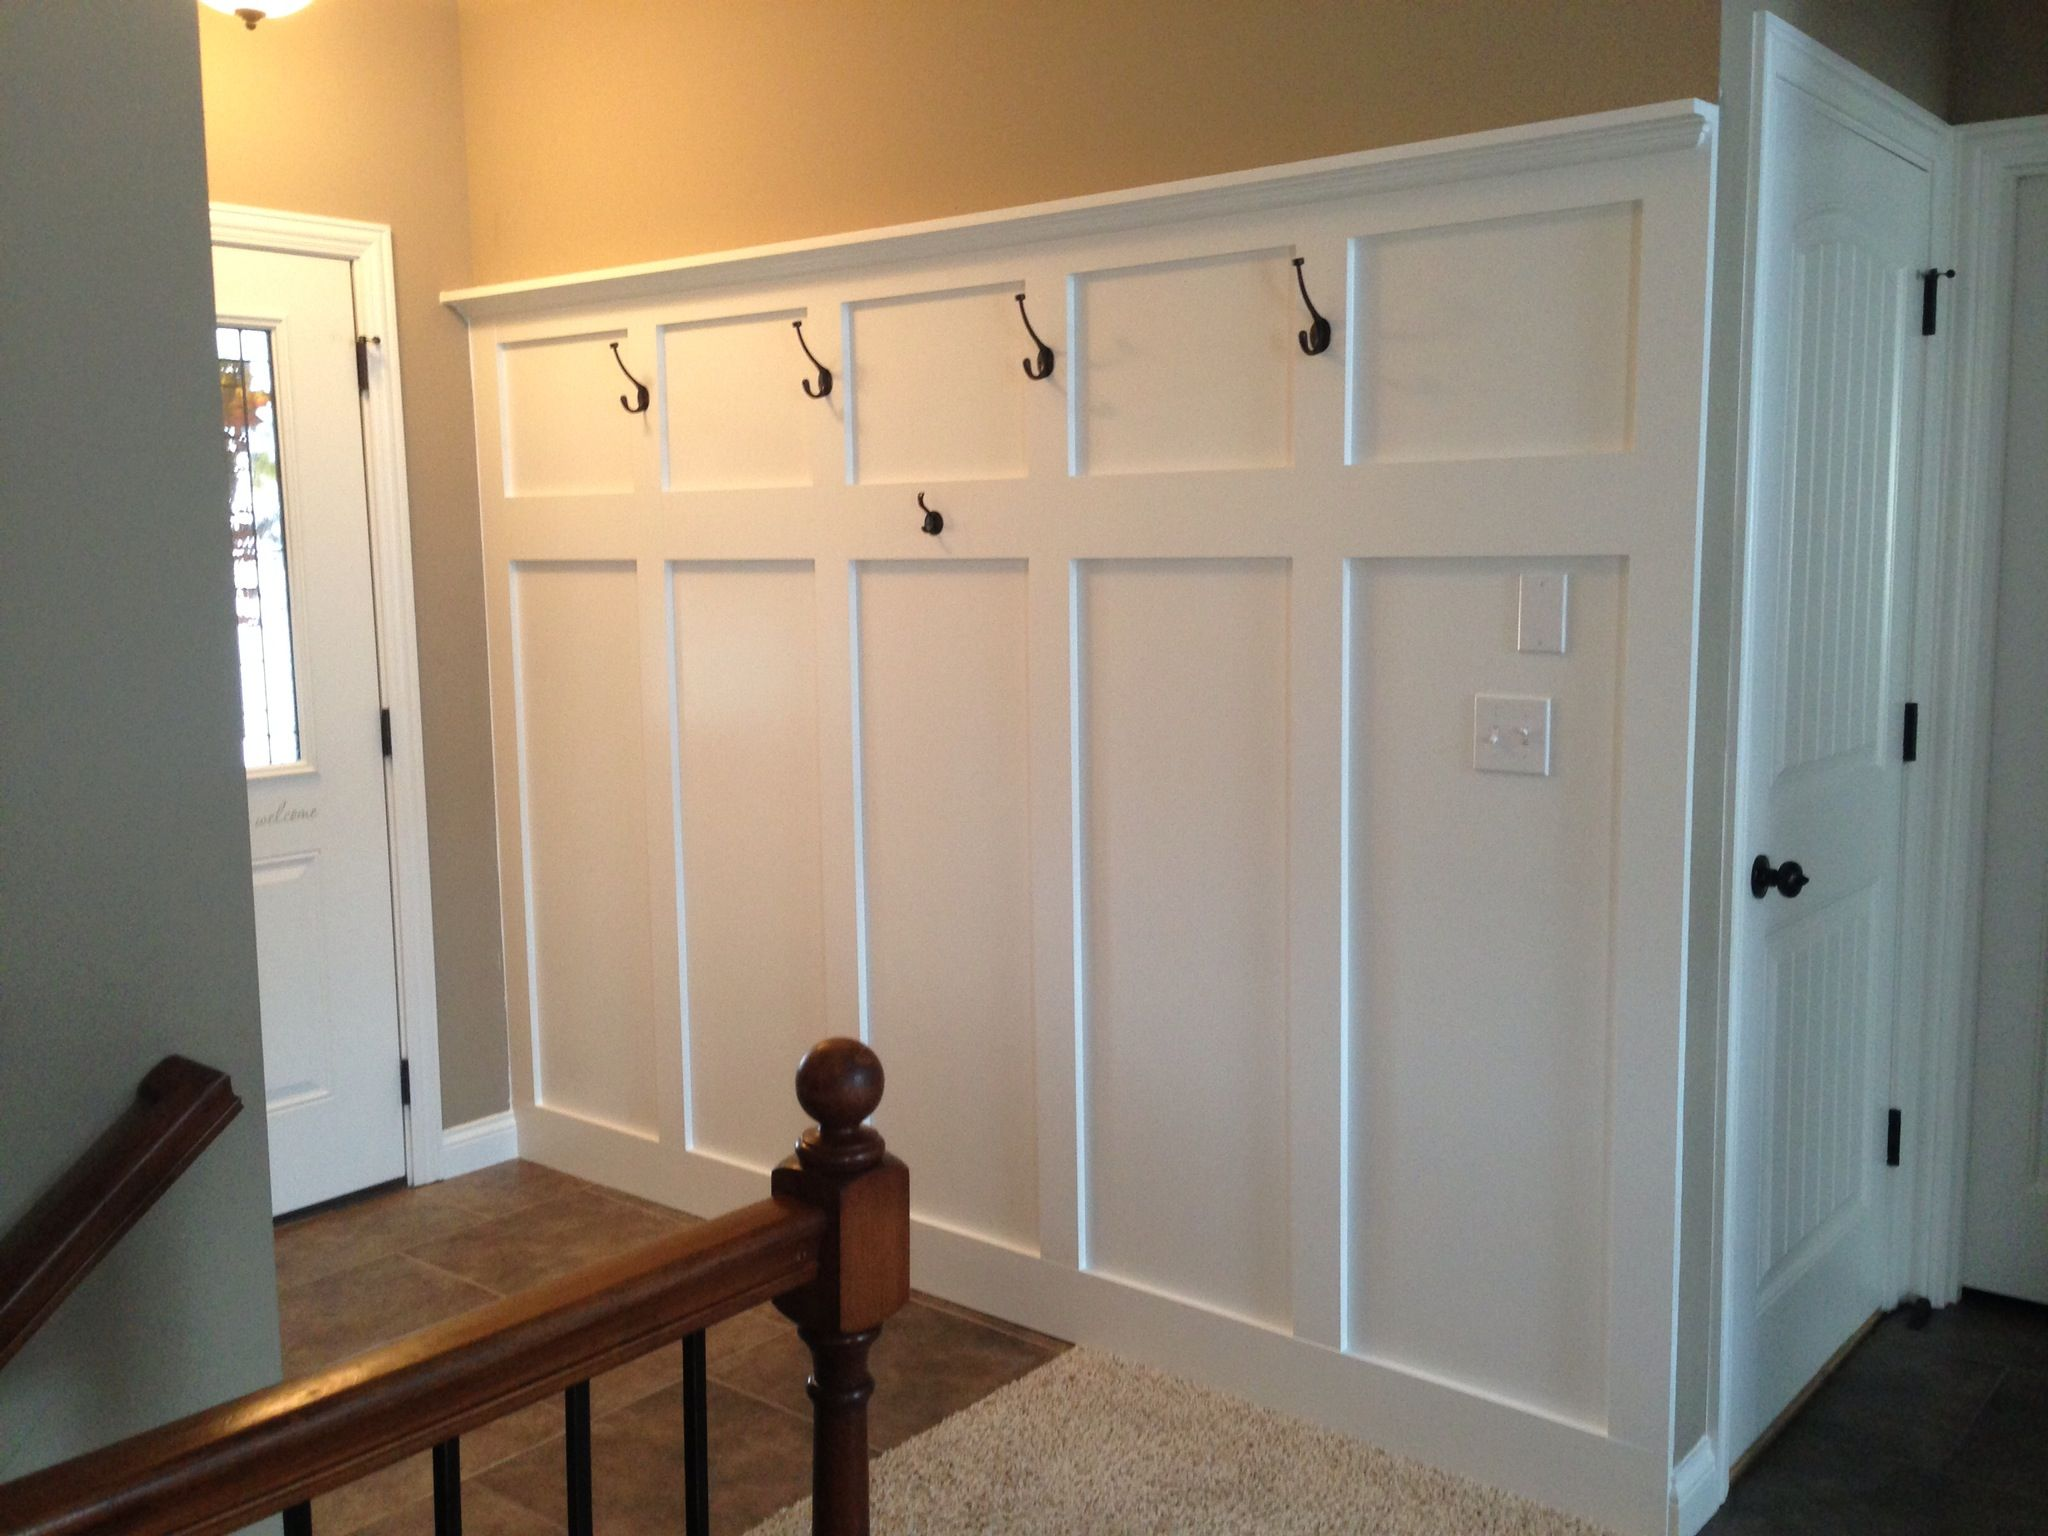 Entryway Wainscoting With Hooks For Coats And A Shelf For Decorations Installing Wainscoting Wainscoting Panels Entryway Wall Decor